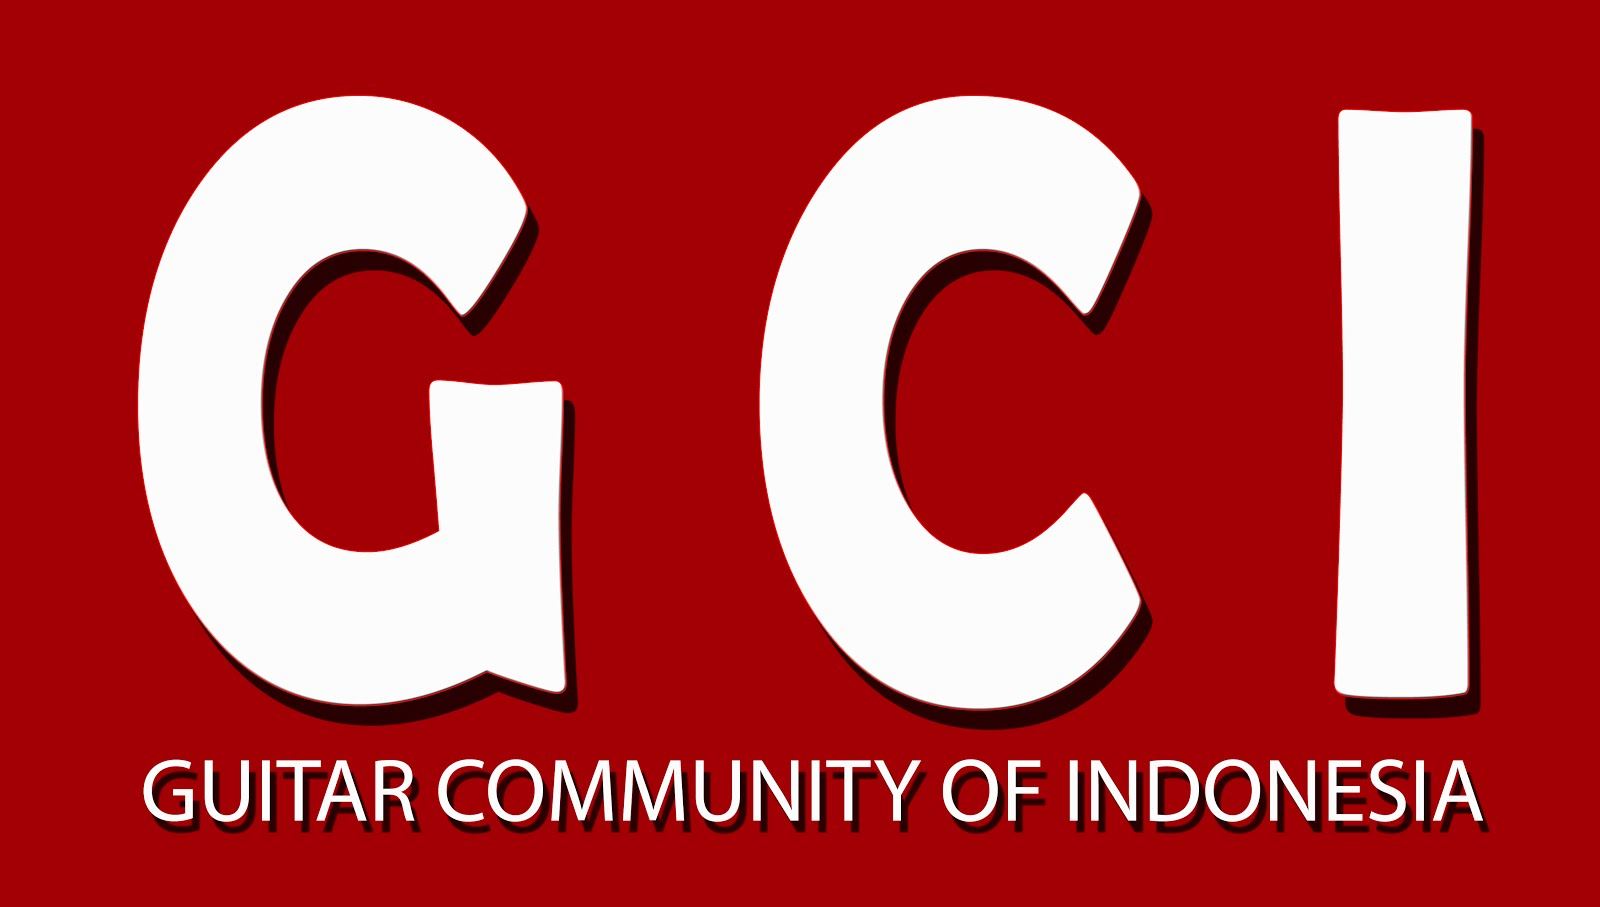 GUITAR COMMUNITY OF INDONESIA | GCI